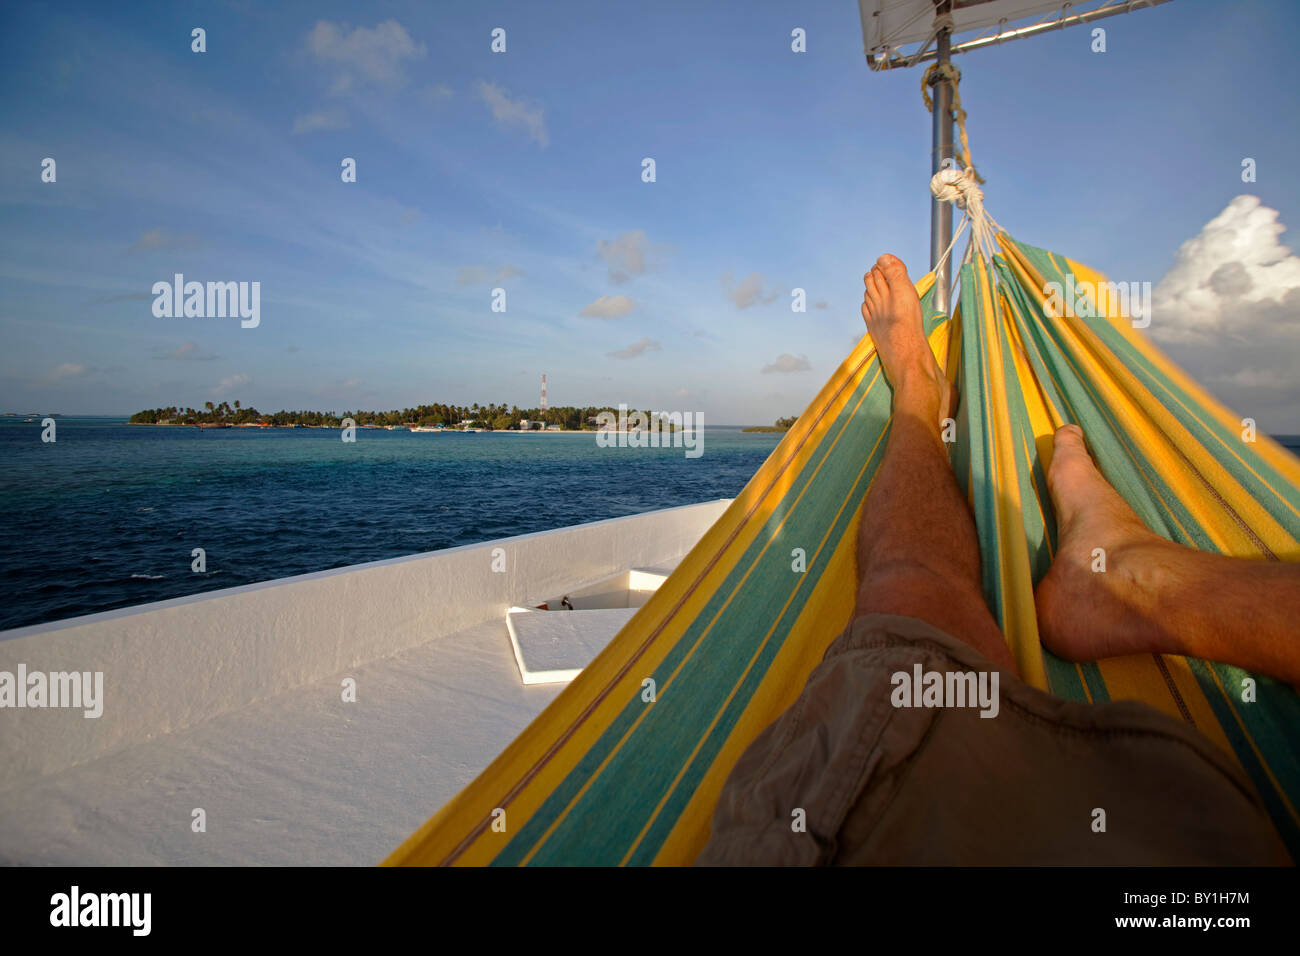 Relaxing in a hammock overlooking a coral attol in the South Ari Attol group of islands, Maldives - Stock Image